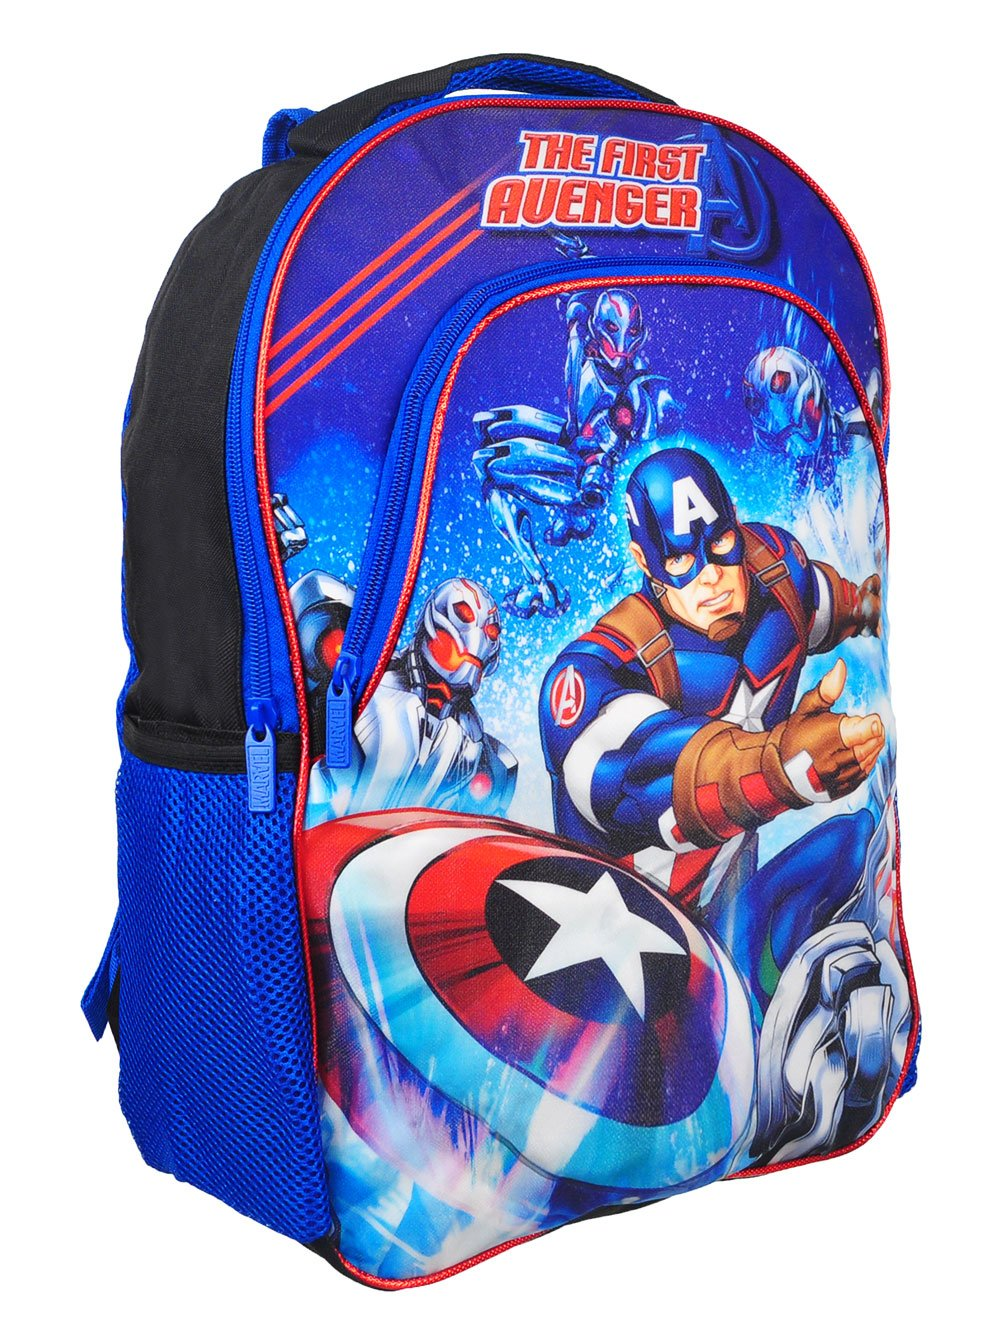 Marvel ''The First Avenger'' Captain America Color Change Lights 16-inch Backpack by Marvel (Image #1)